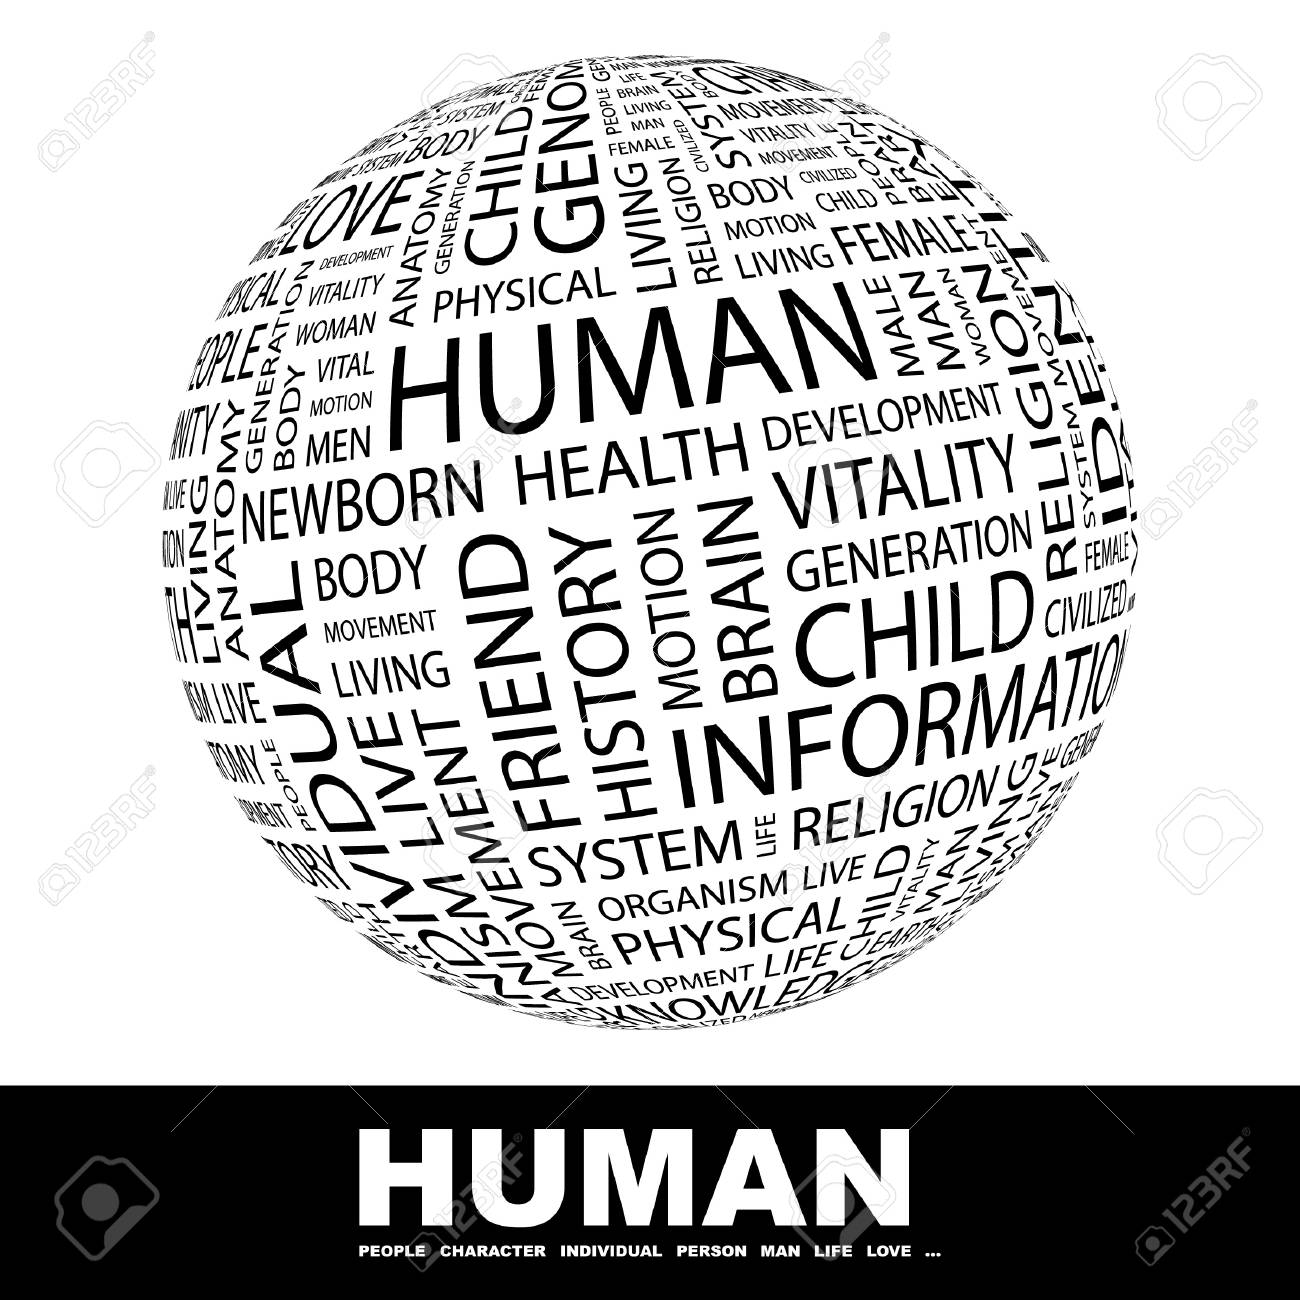 HUMAN. Globe with different association terms. Wordcloud vector illustration. Stock Vector - 8840188